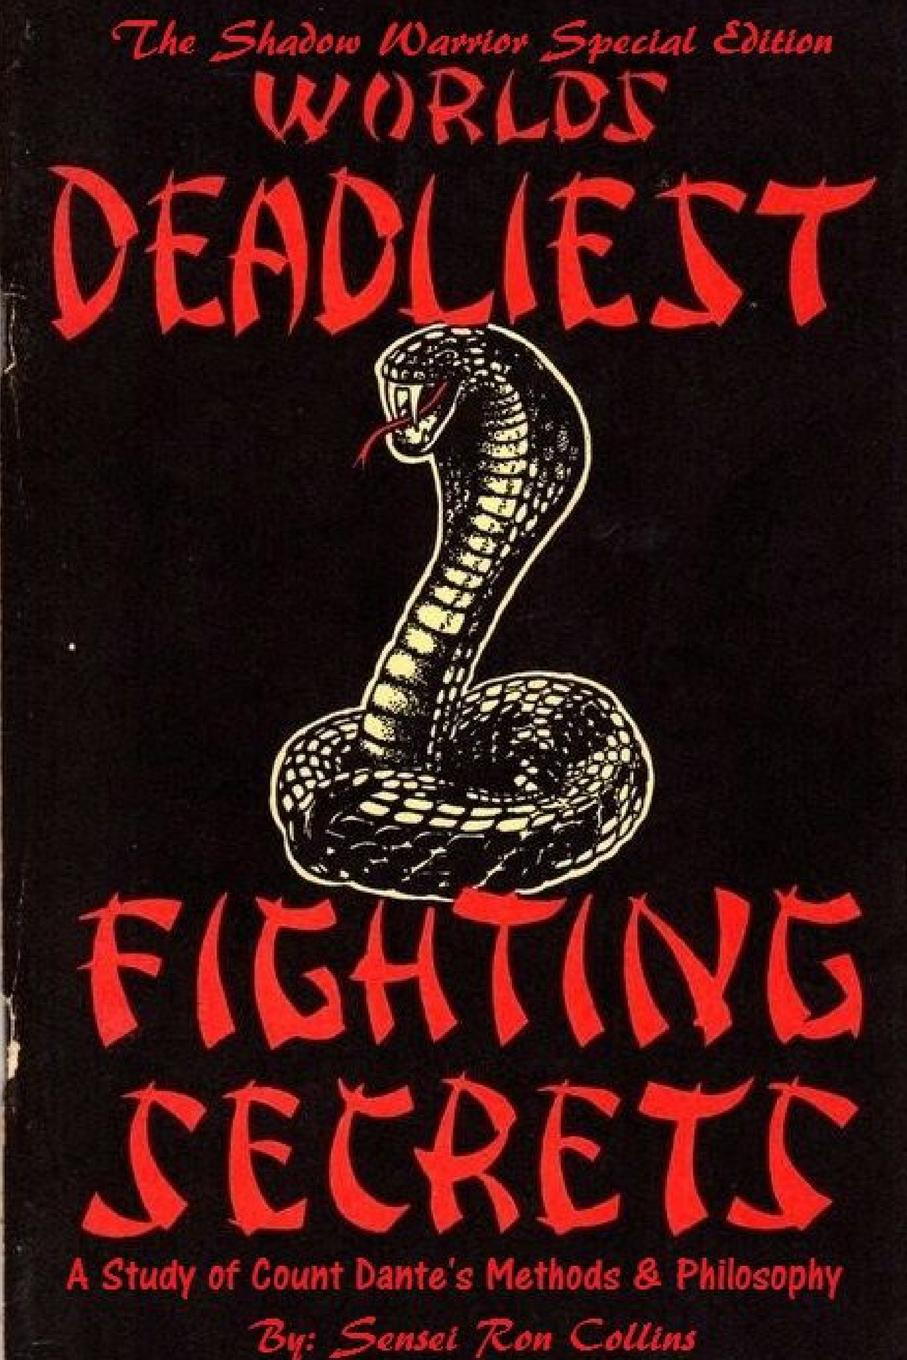 Ron Collins Special Shadow Warrior Edition Worlds Deadliest Fighting Secrets. A Study of Count Dante's Methods & Philosophy john evans in the shadow of cotton